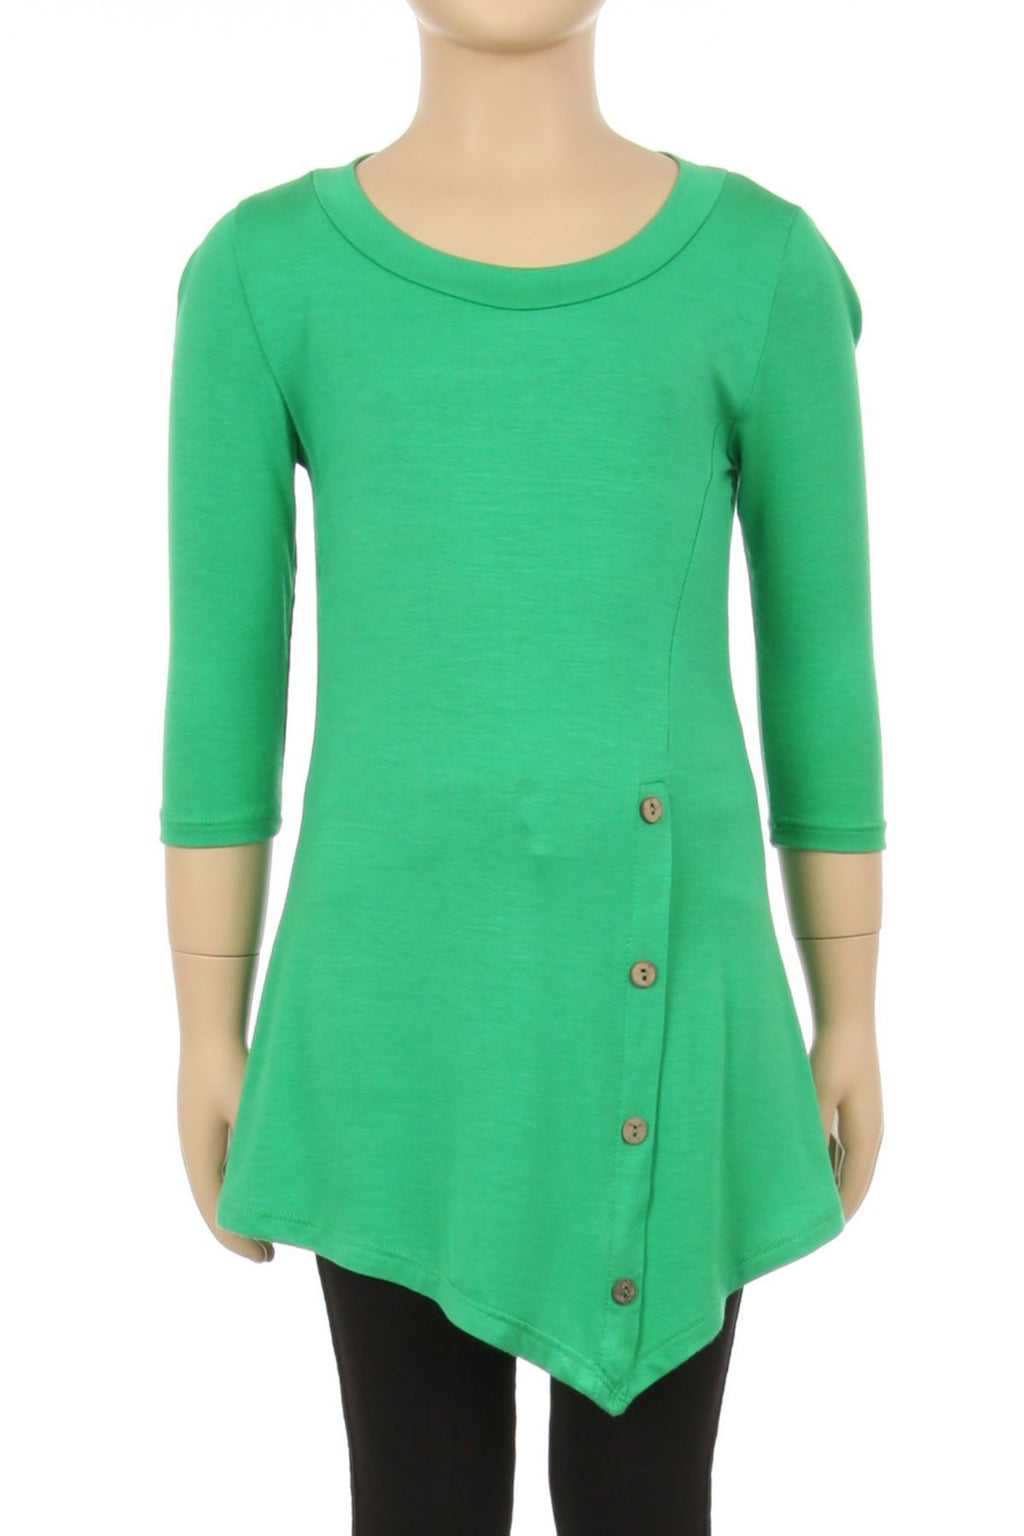 Girl's Green Tunic Dress Asymmetric Top: S/M/L/XL - MomMe and More